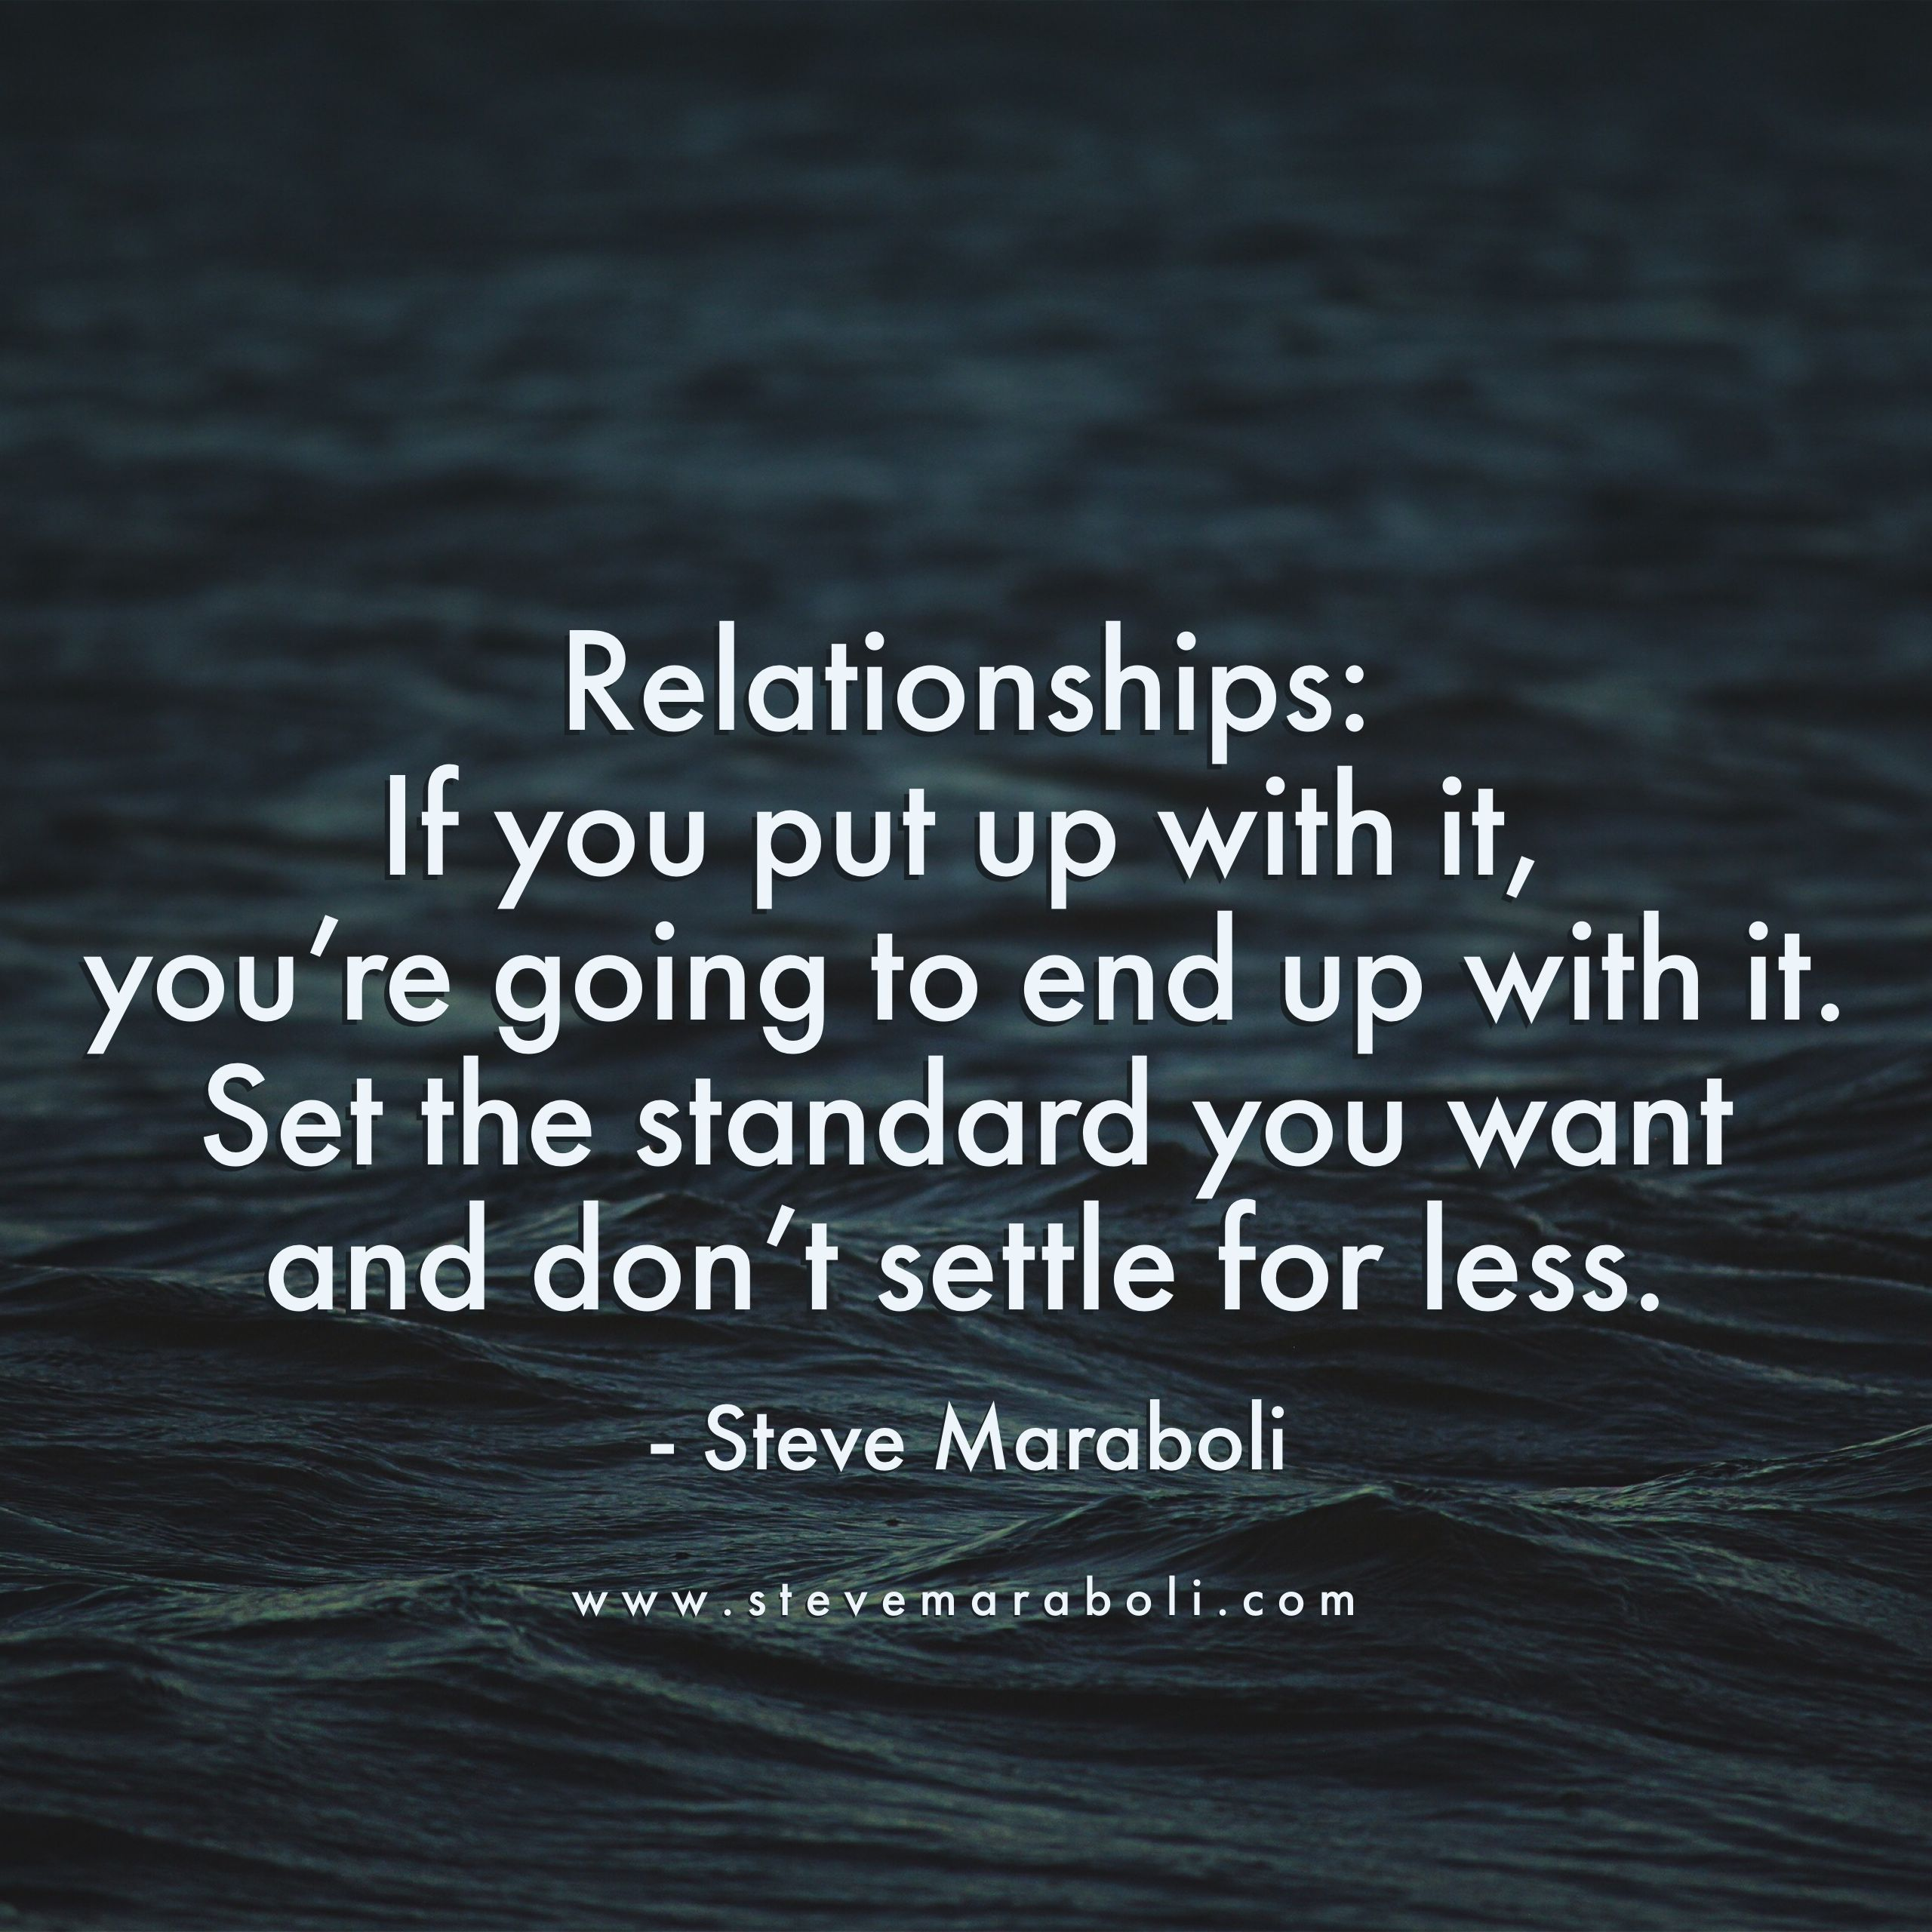 Love And Relationship Quotes Love And Relationship Quotes  Steve Maraboli  Quotes  Pinterest